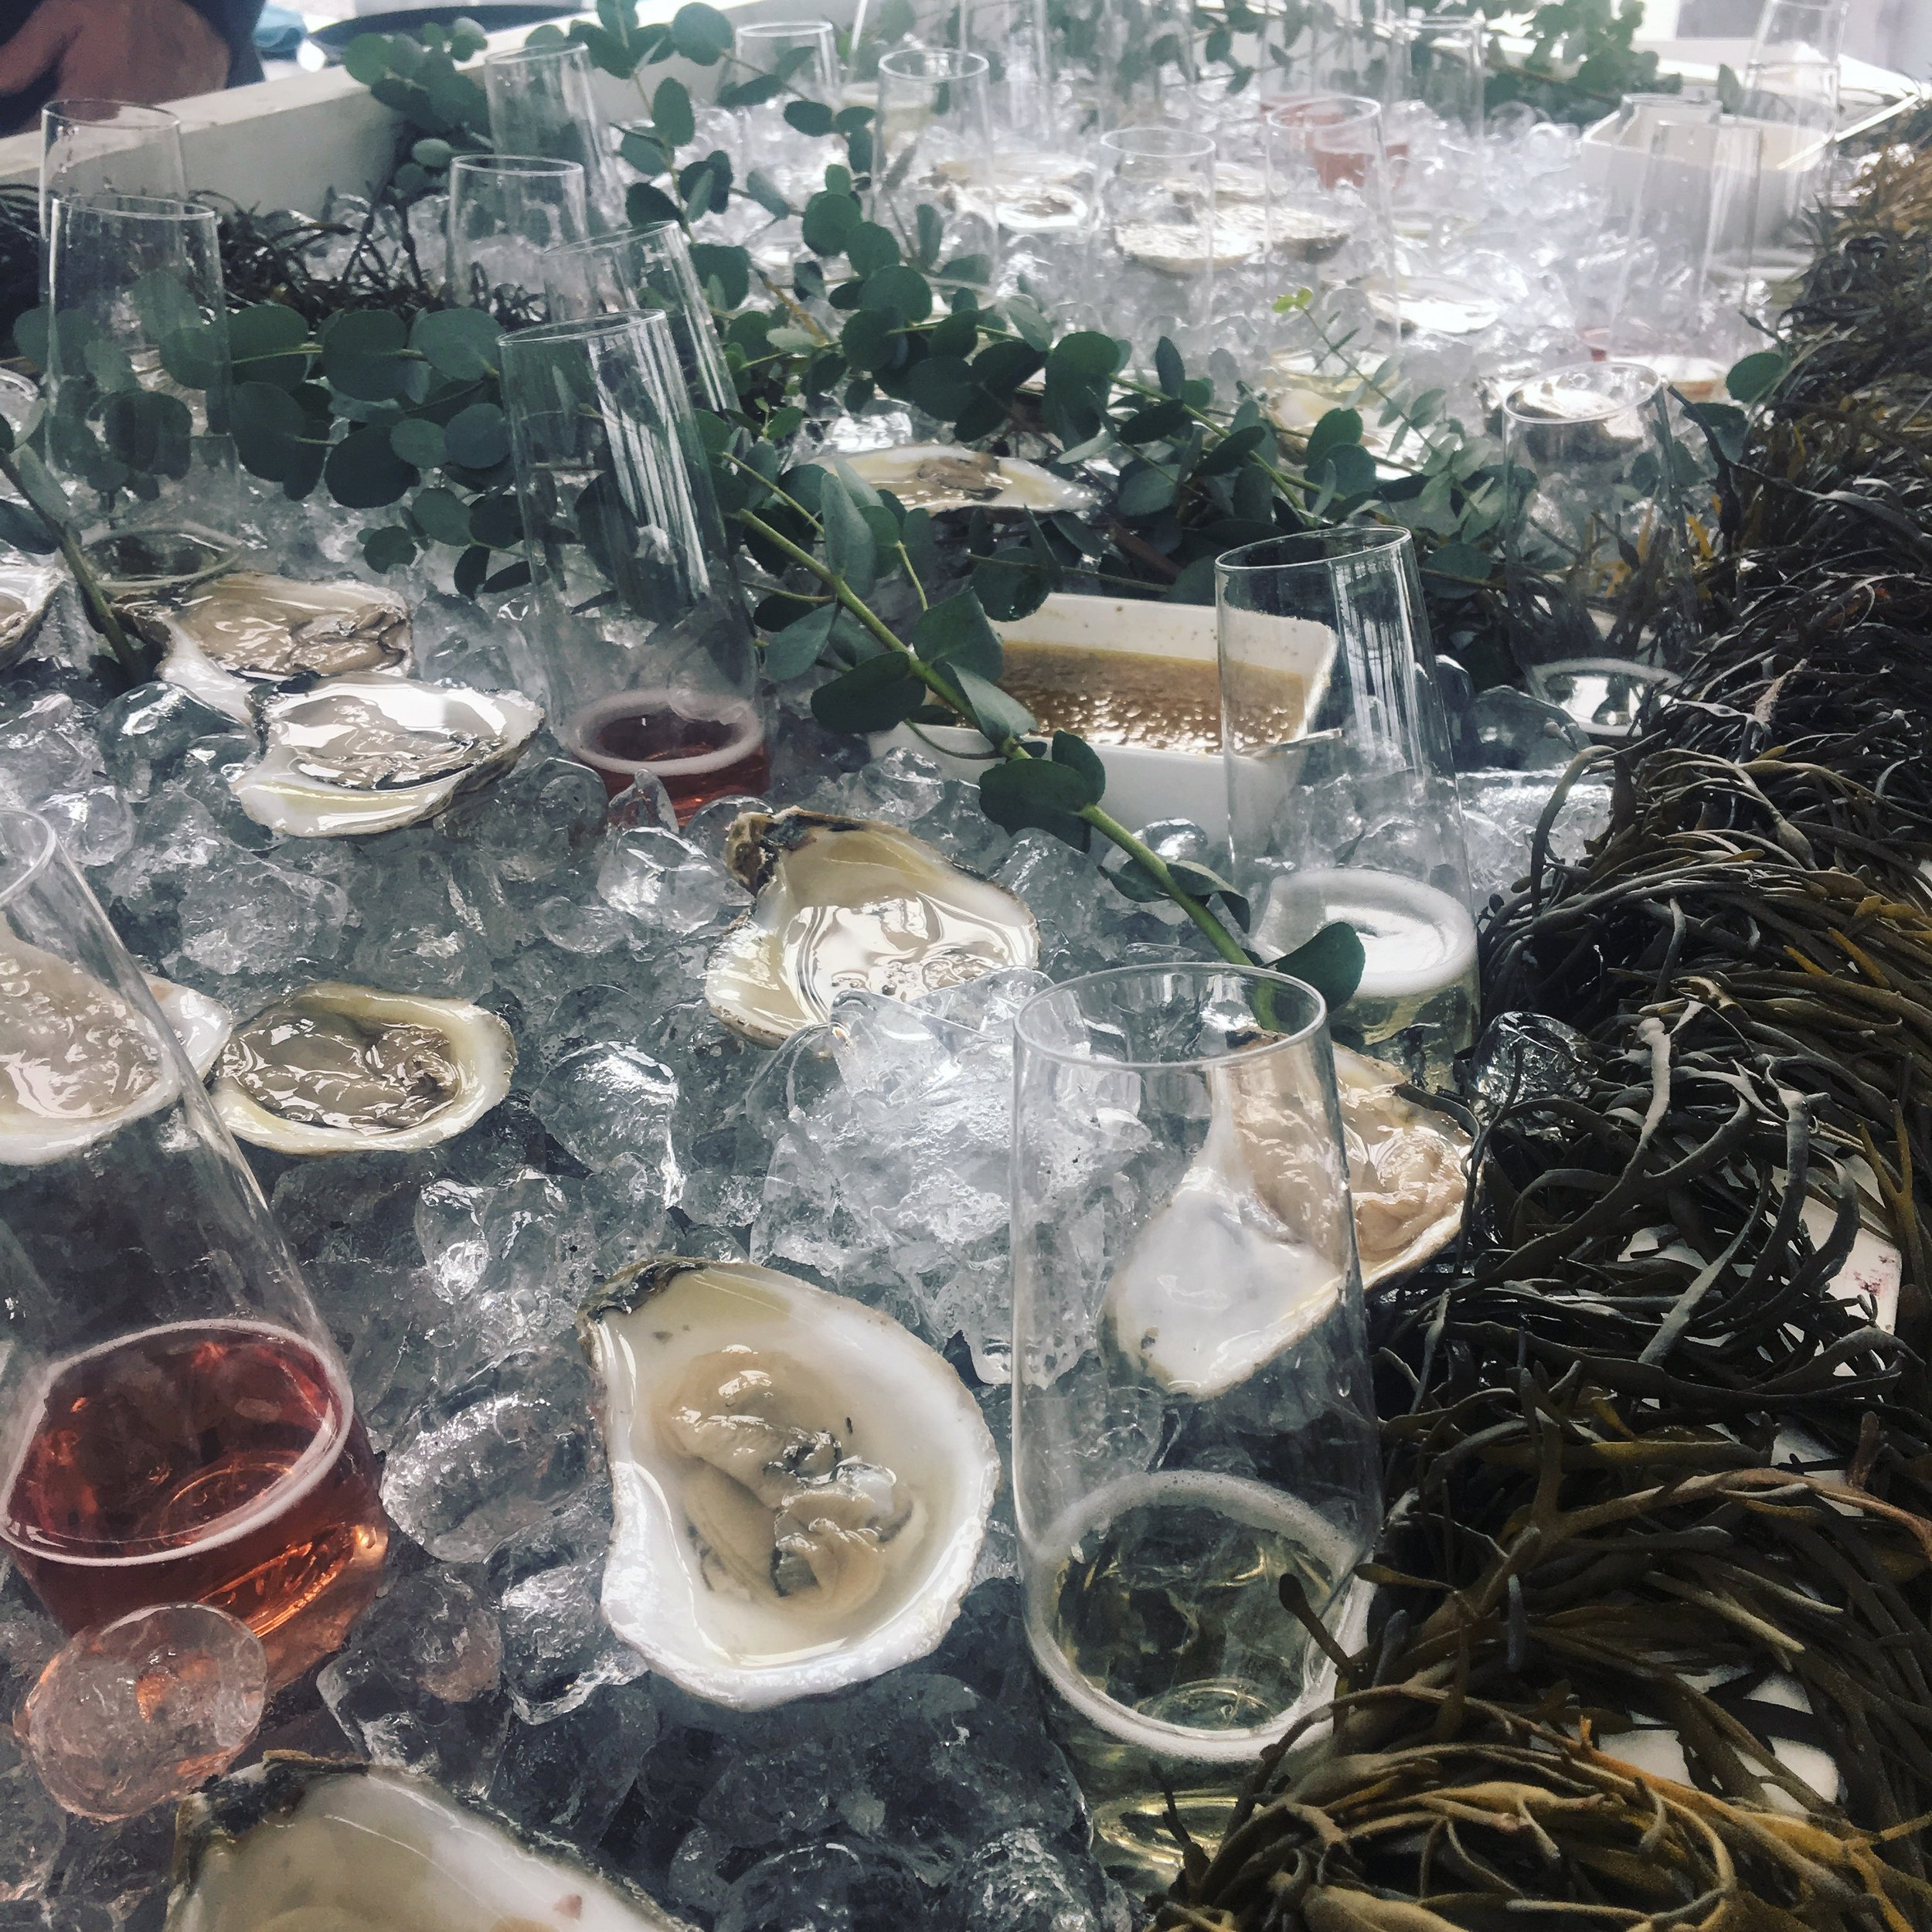 Pair your oysters with some white or pink bubbles!